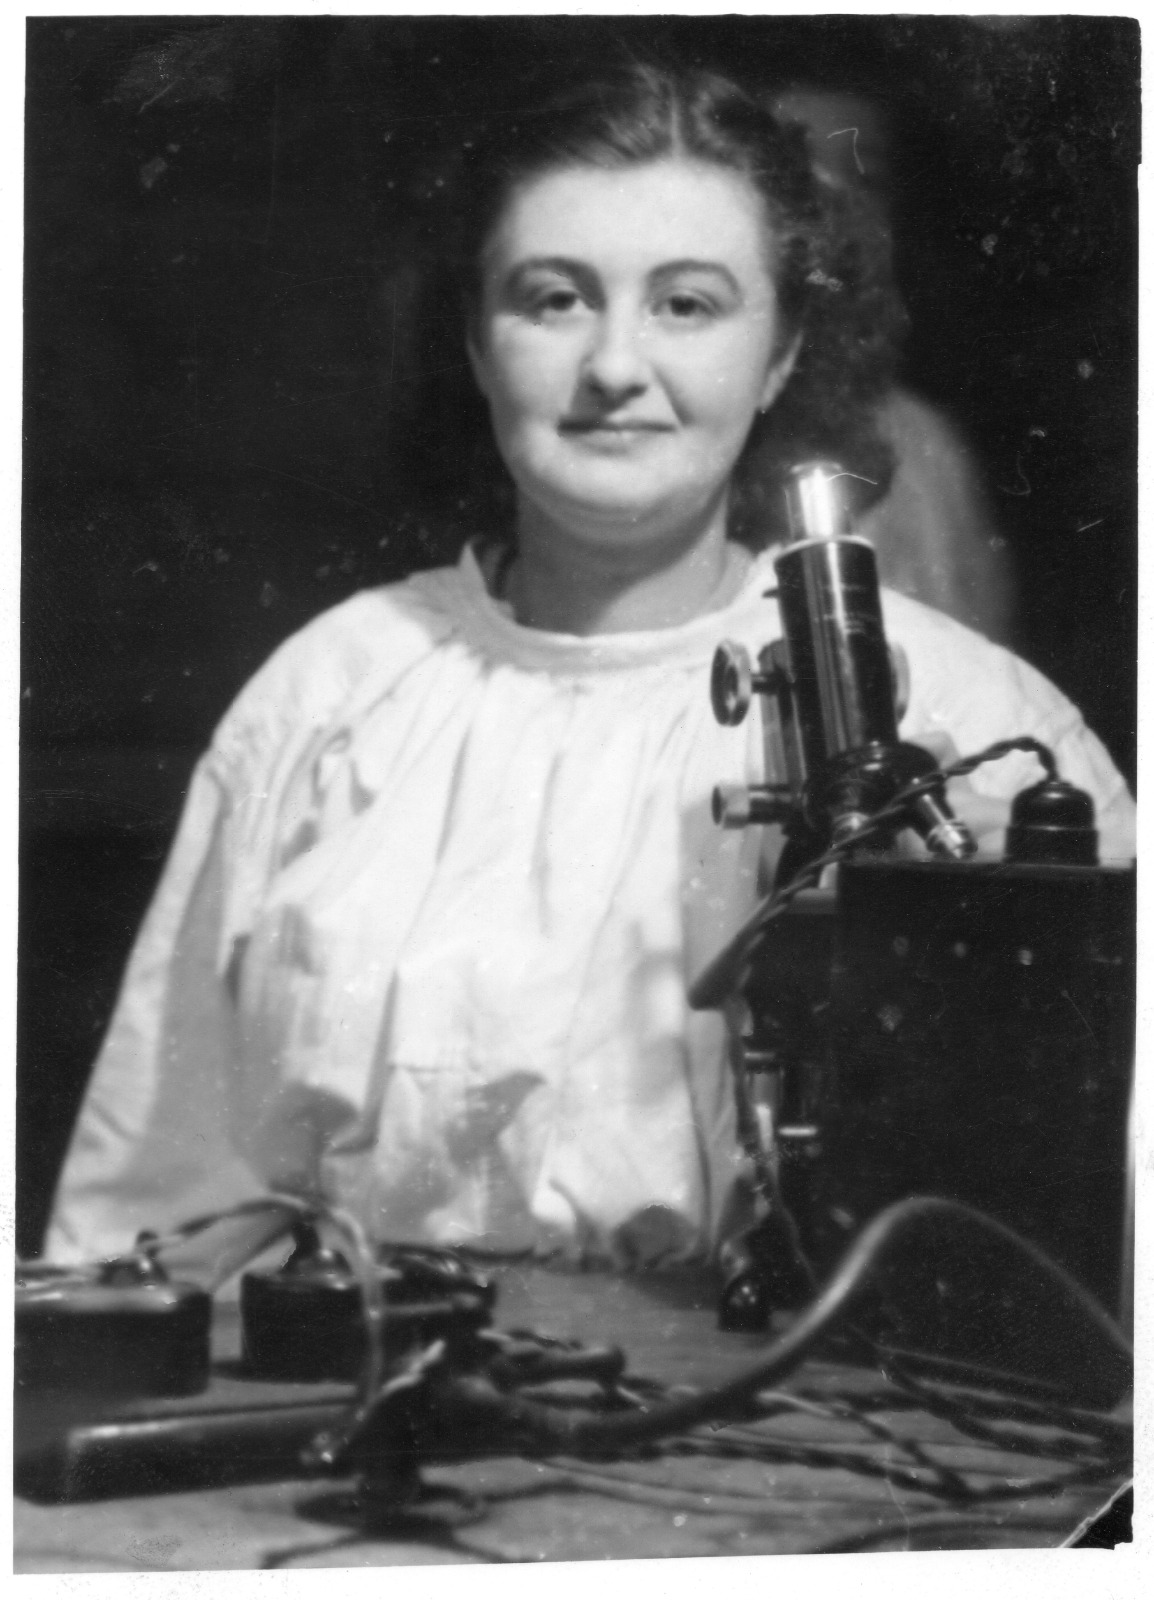 Photograph taken of June Hart around 1950 in the histopathology laboratory at Glasgow Royal Infirmary